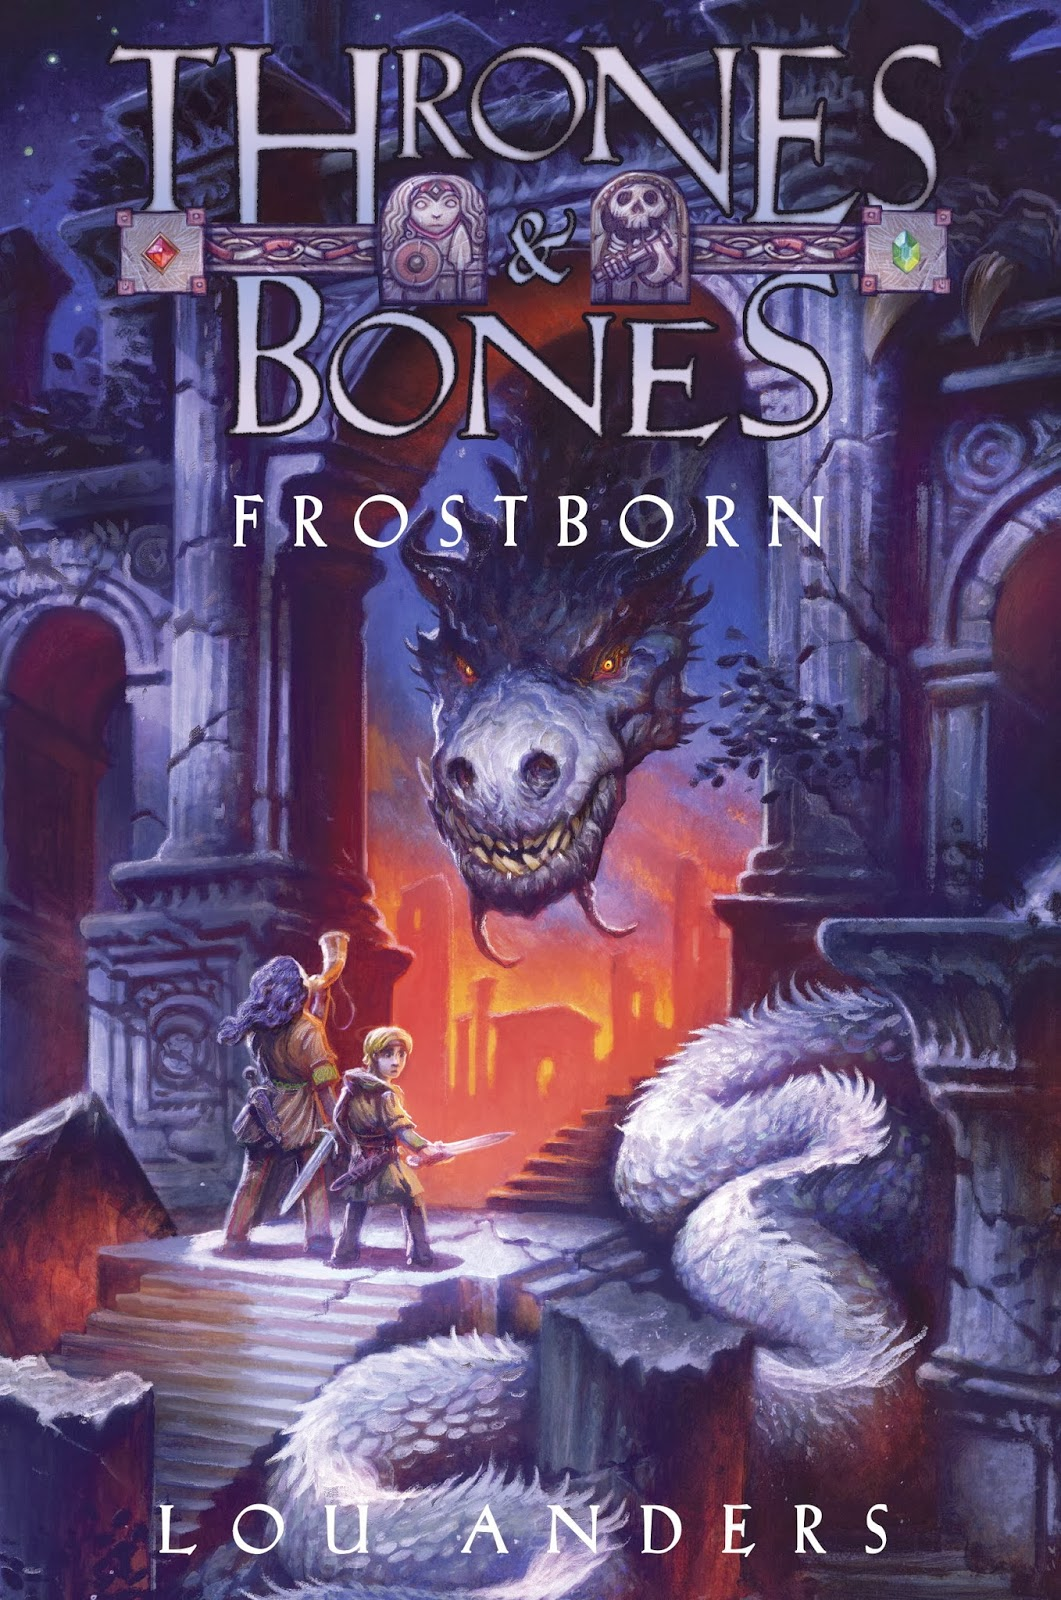 project hem frostborn cover analysis author interview by frostborn cover analysis author interview by matthew macnish